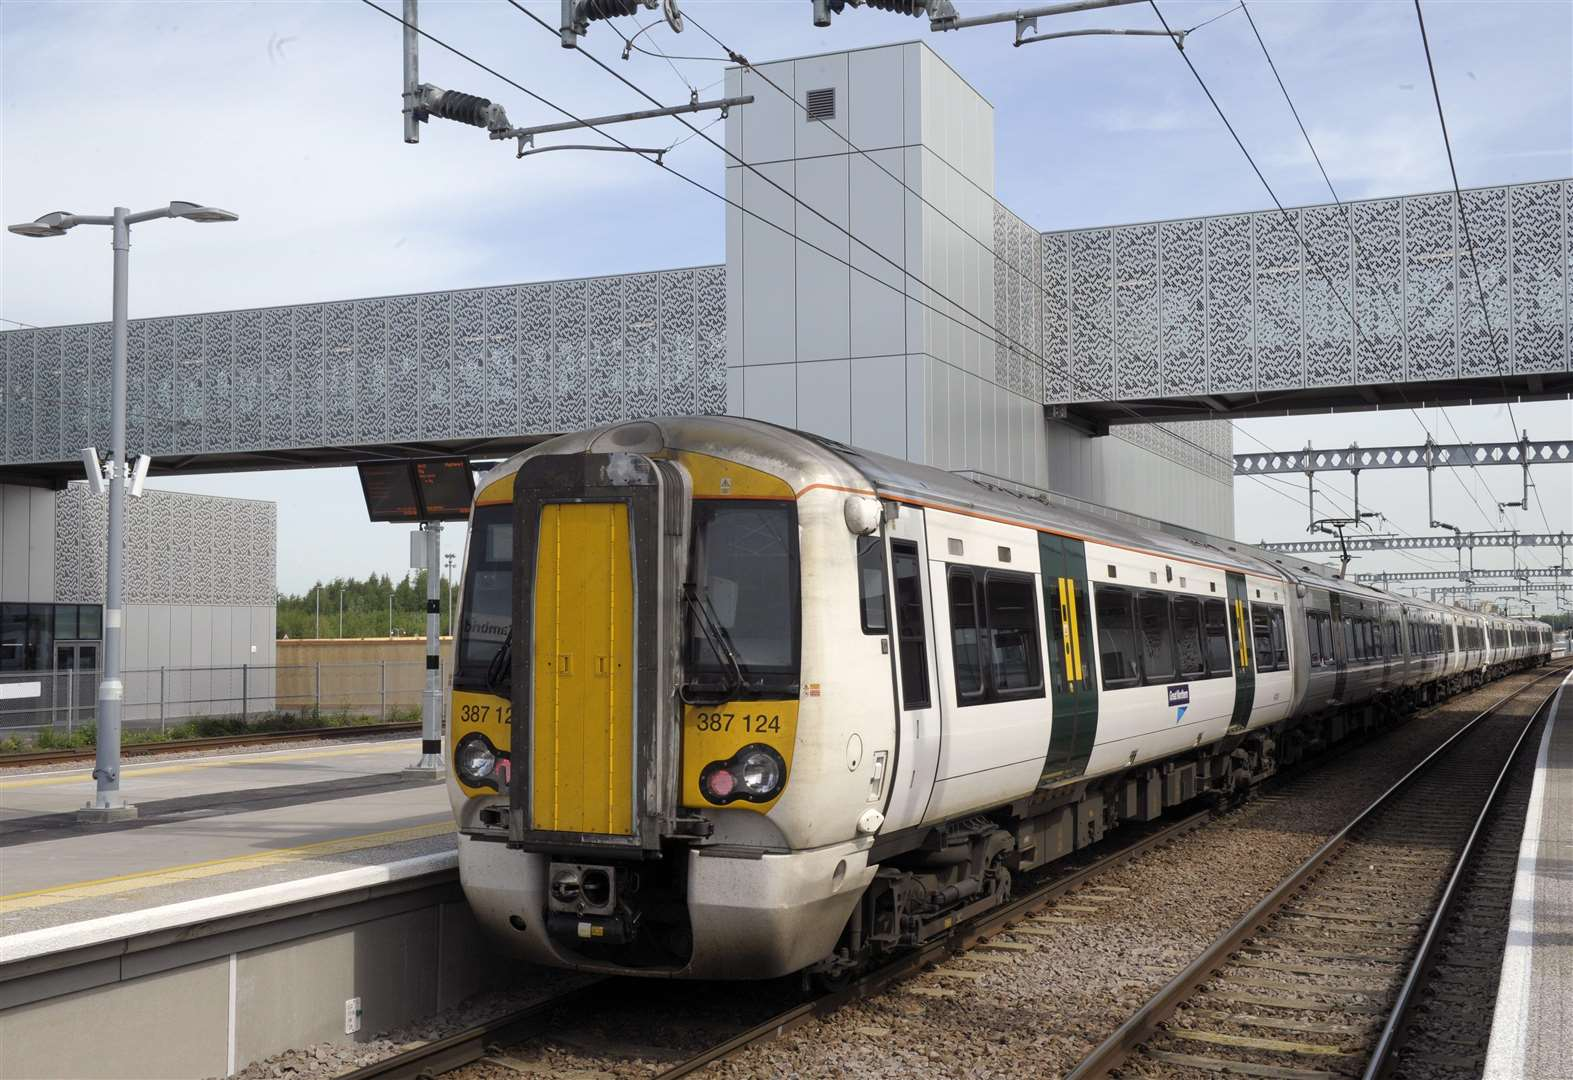 Signalling fault leads to more rail problems for West Norfolk commuters